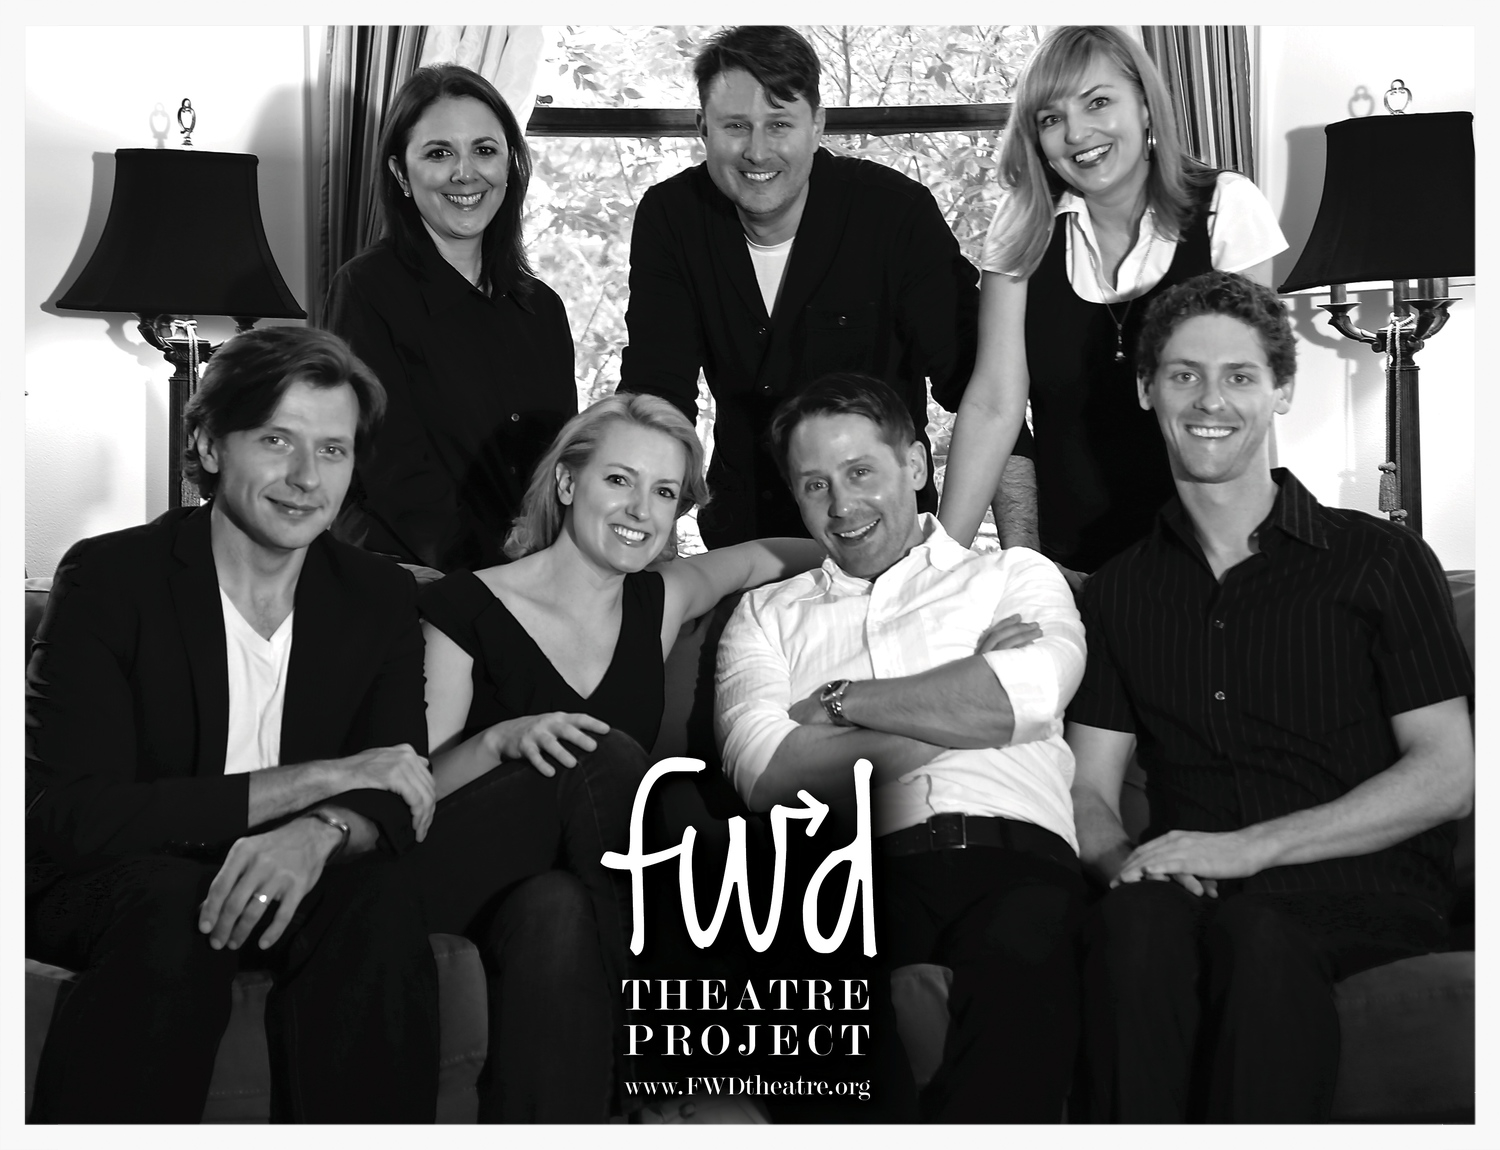 FWD Theatre Project